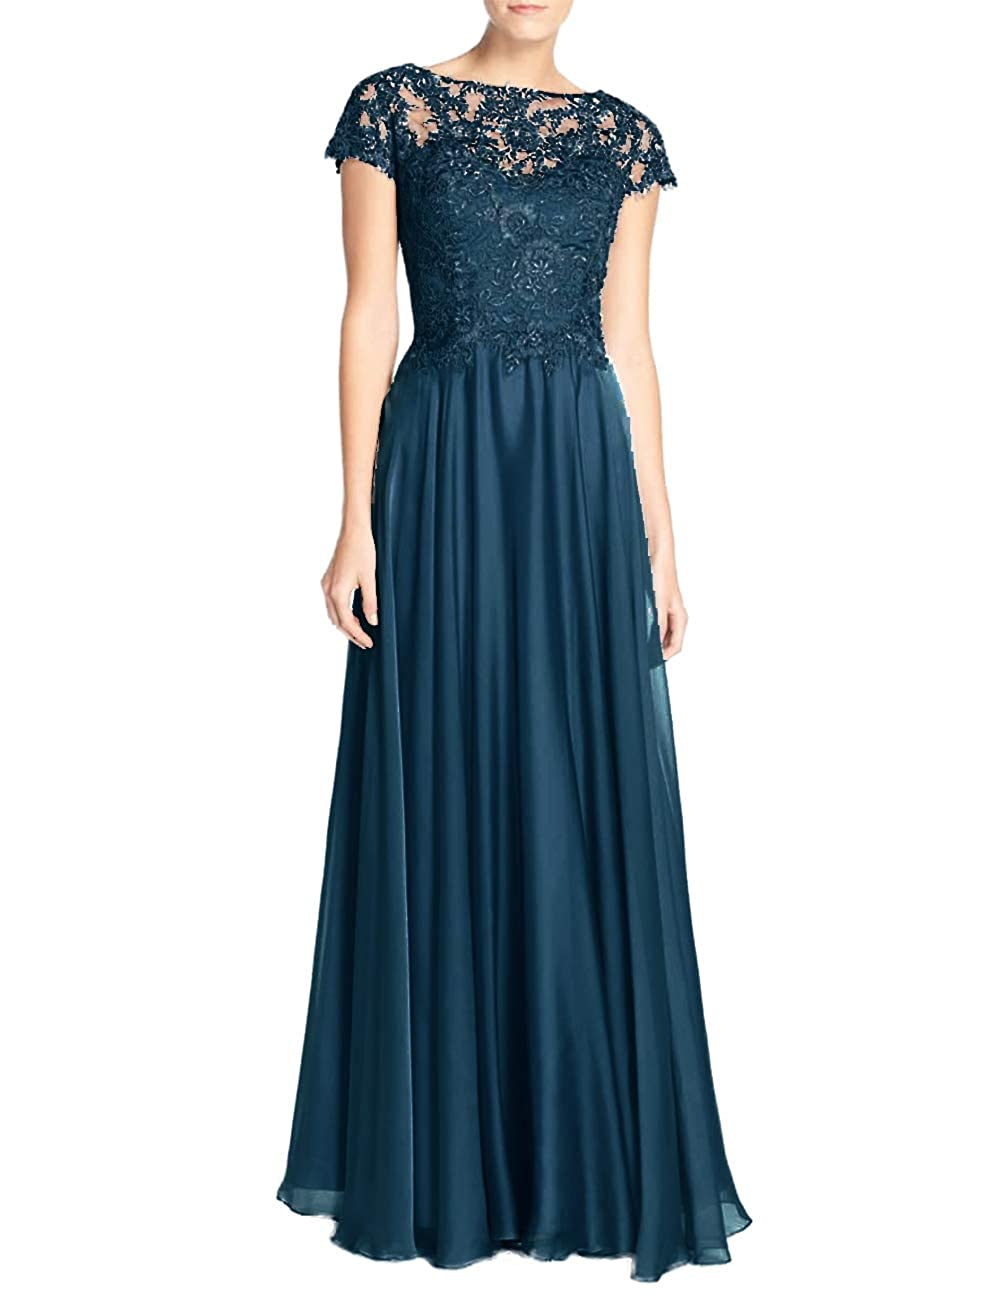 Teal Mother of The Bride Dresses with Short Sleeves Plus Size Mother Gowns and Evening Dresses Formal Dress